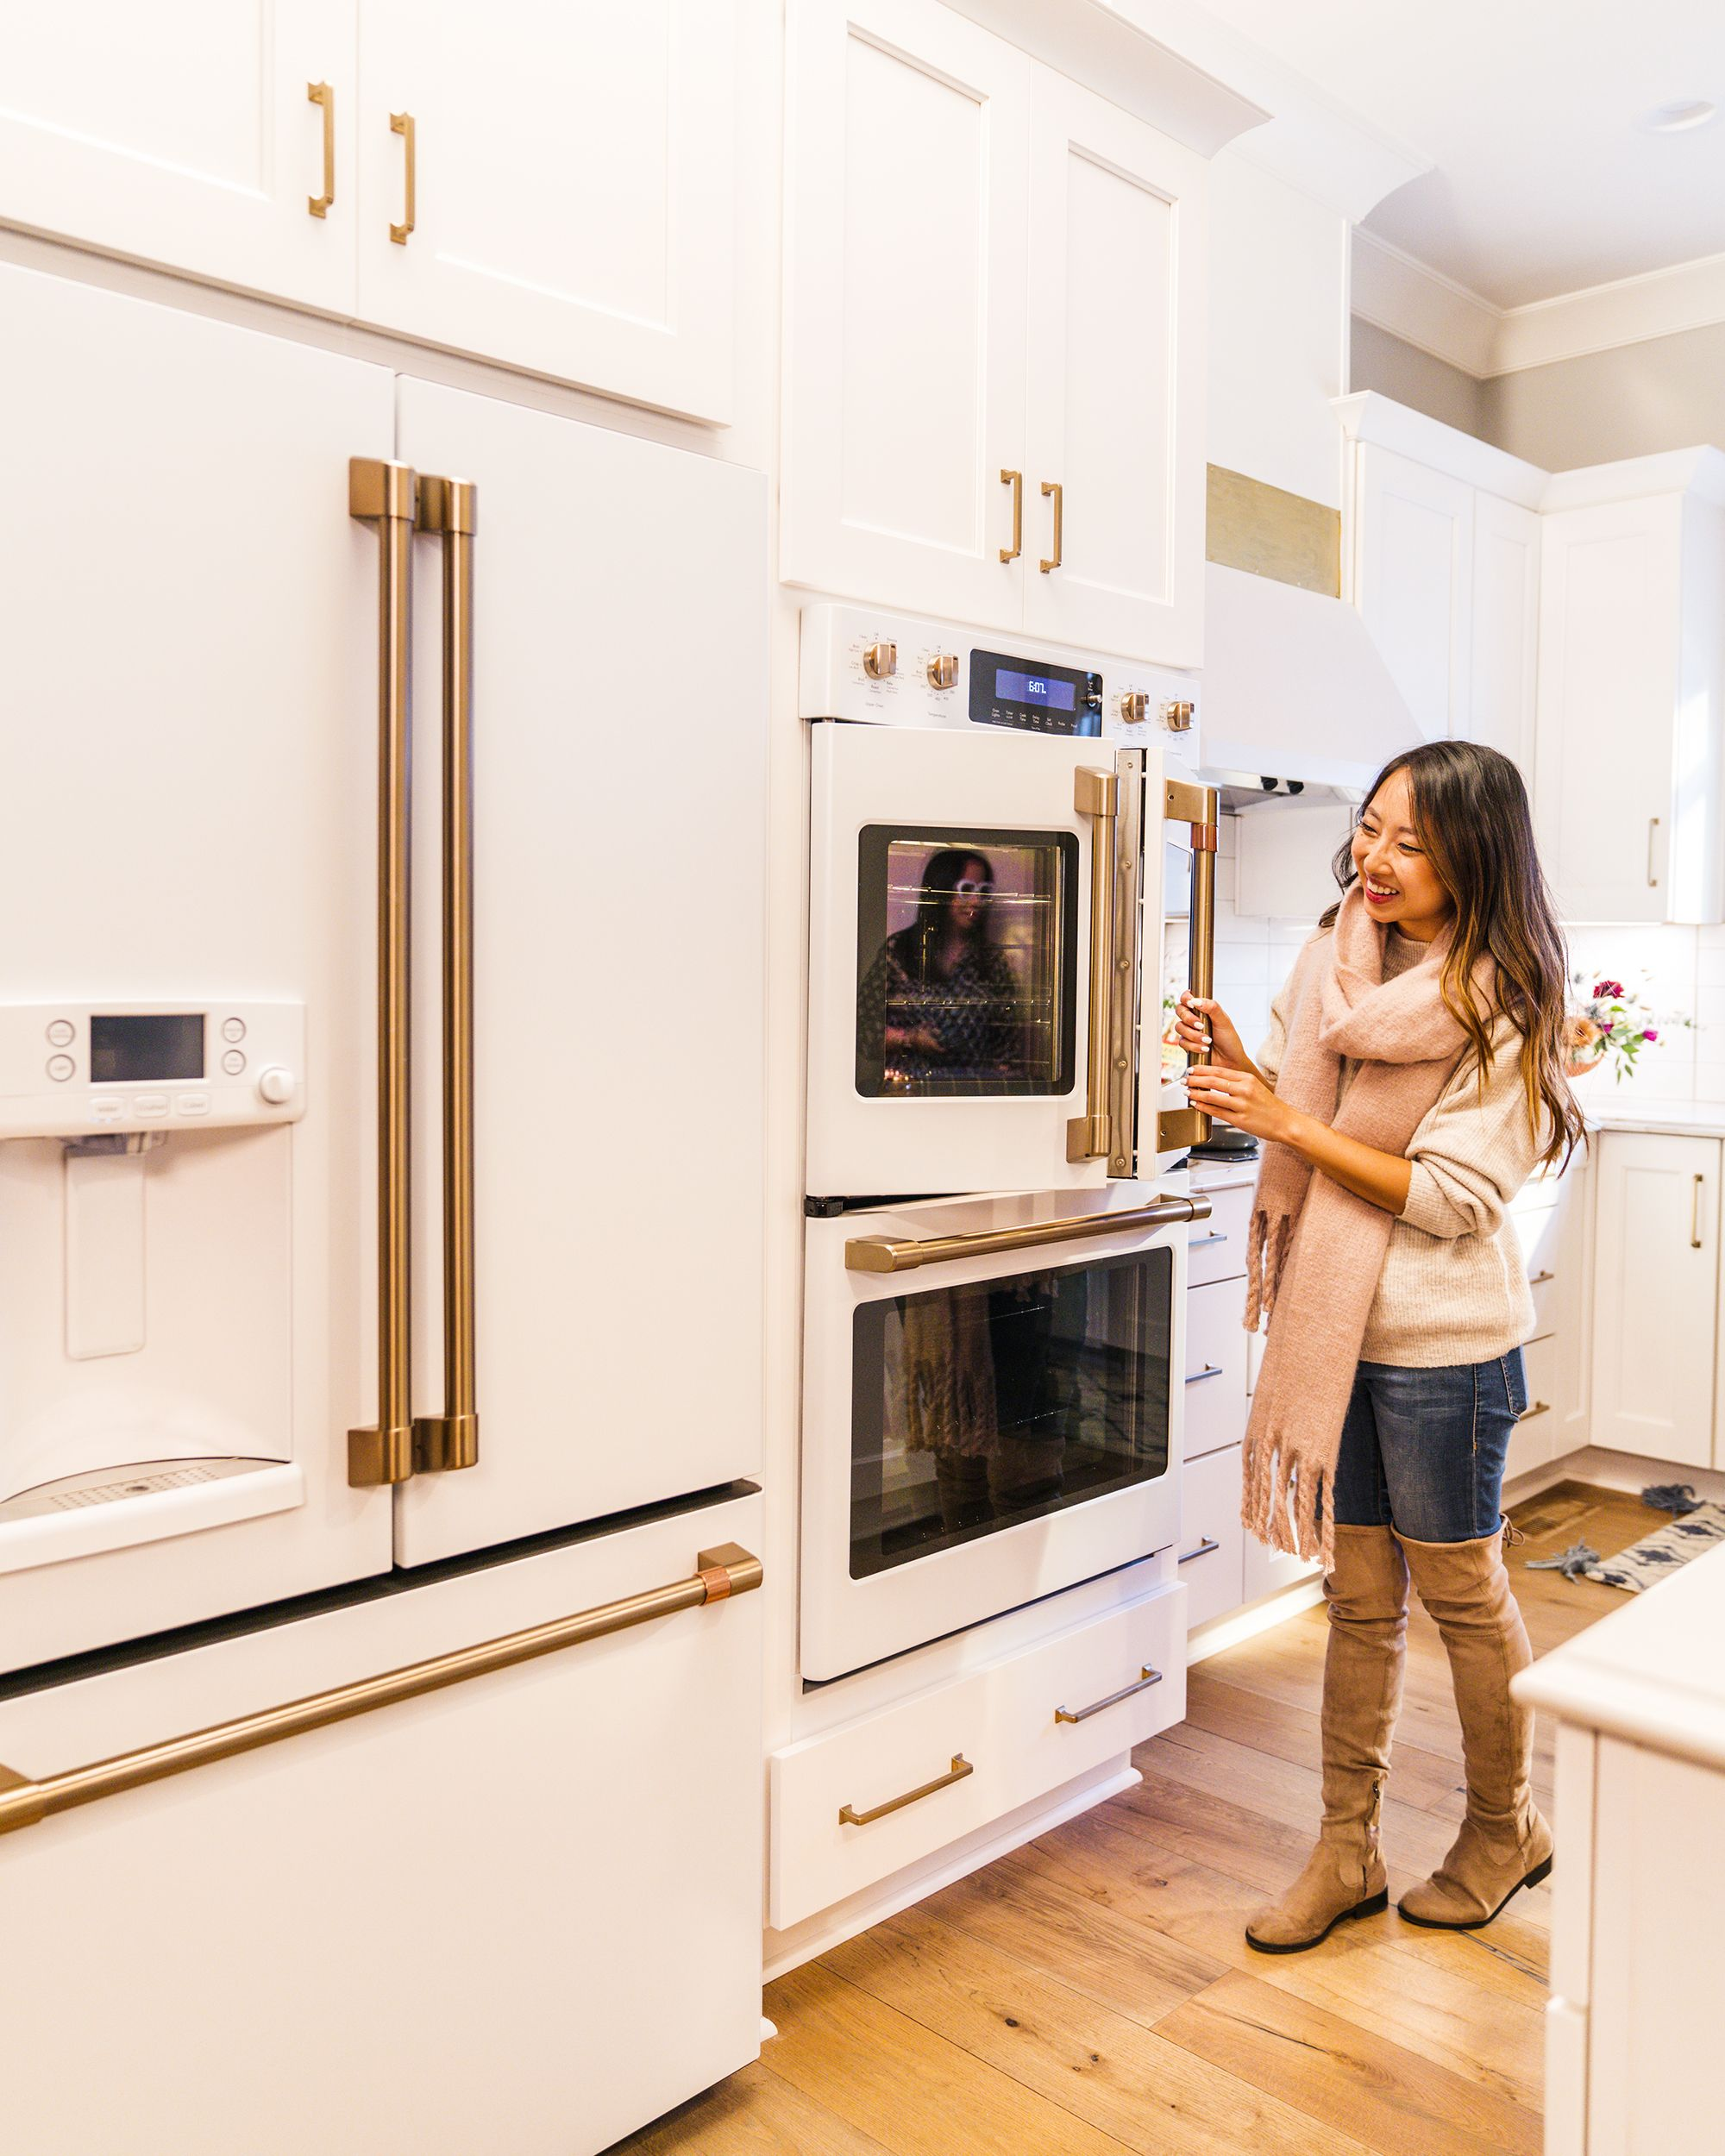 😍 All matte white kitchen with brushed copper details - my DREAM KITCHEN! @CafeAppliances is a new Brand made by GE Appliances available at Best Buy with matte white & black refrigerator, cooktop, oven, & dishwasher!   #ad #distinctbydesign #CaféAppliances